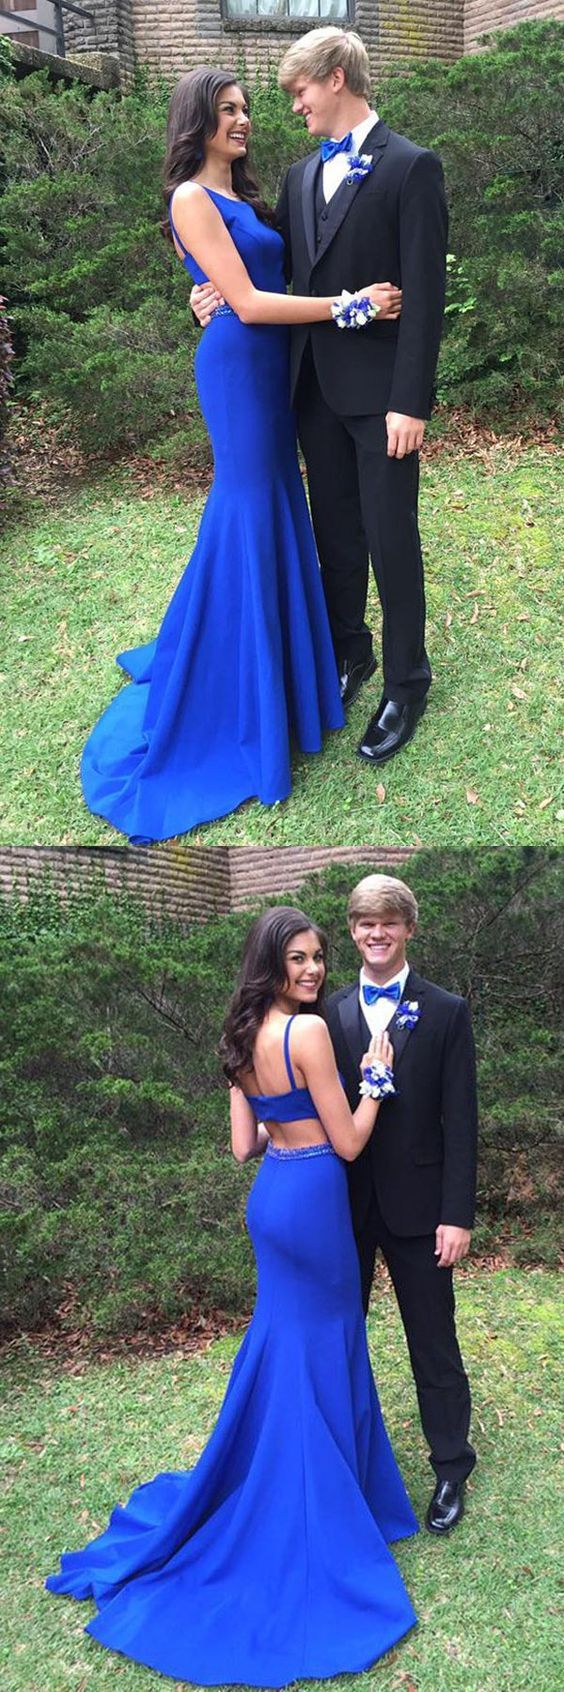 Royal Blue Prom Dress,Mermaid Prom Dress,Backless Prom Dress,Fashion Prom Dress,Sexy Party Dress,Custom Made Evening Dress